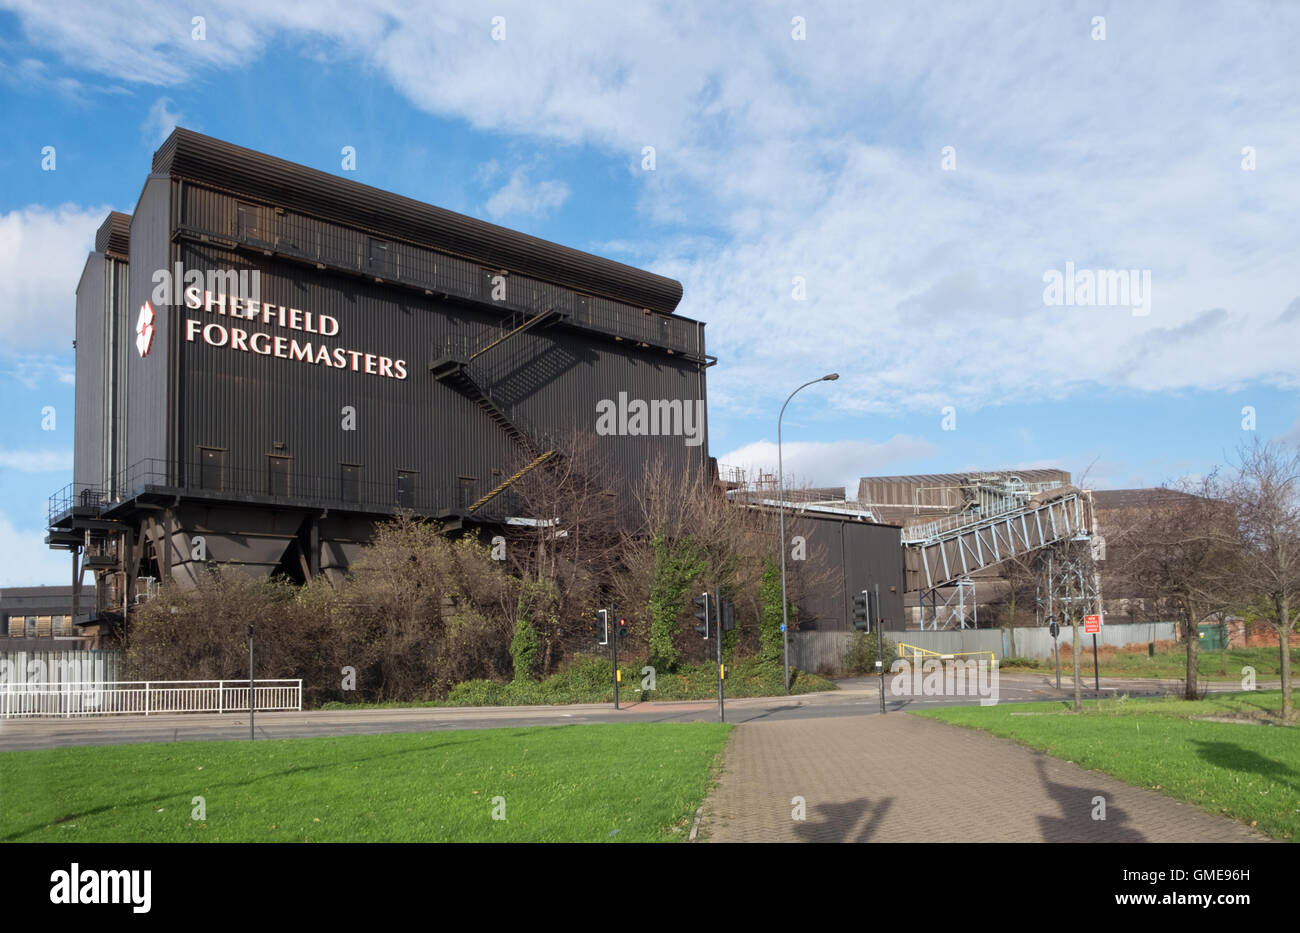 Sheffield Forgemasters steelworks - Stock Image